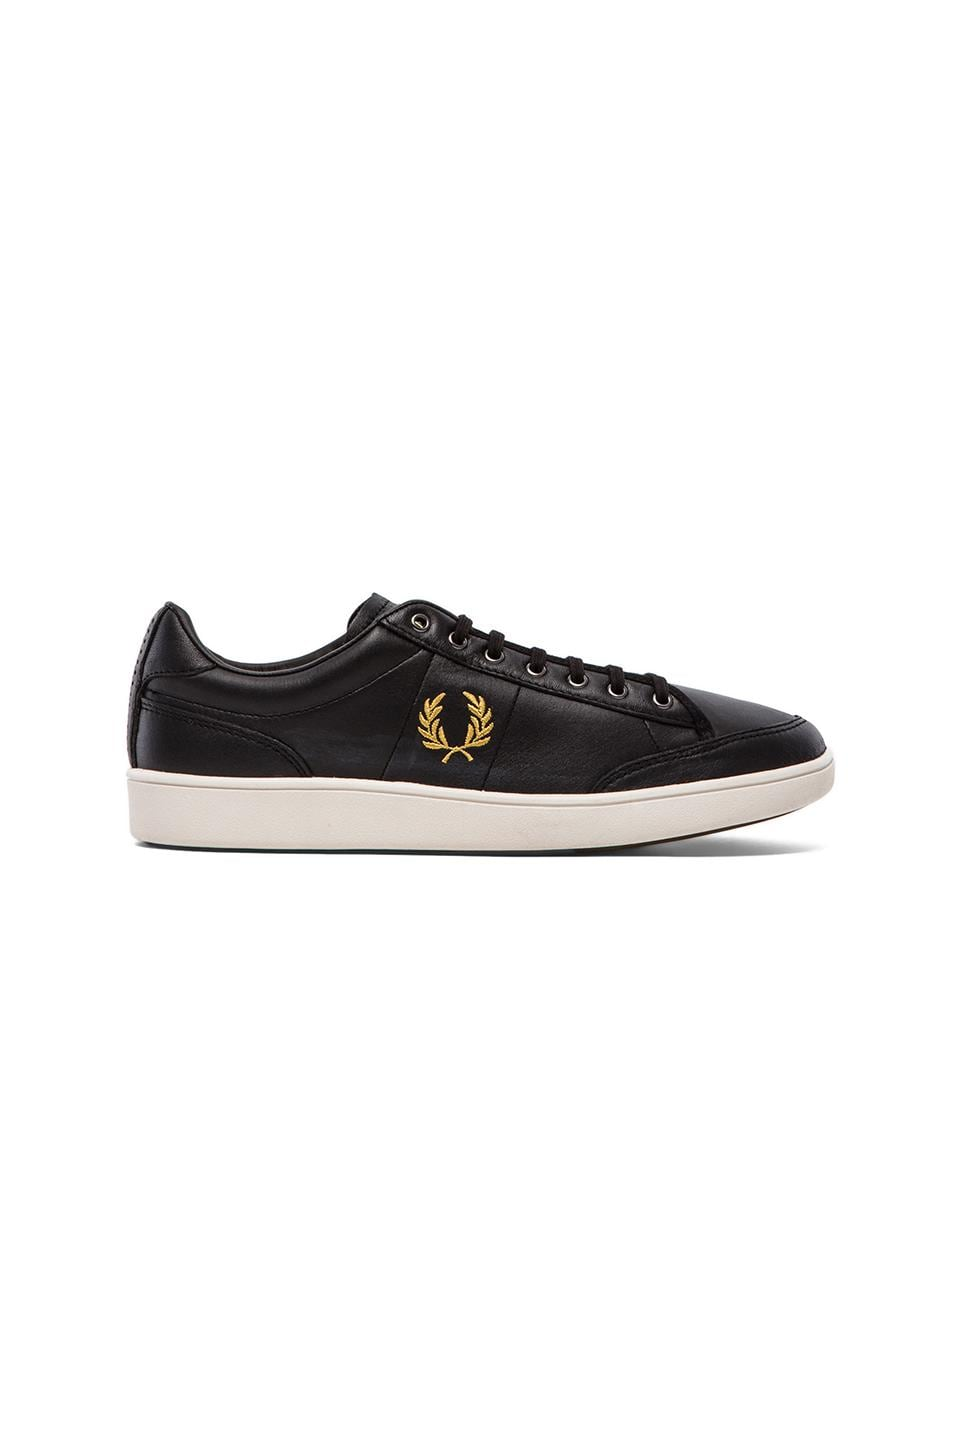 Fred Perry Hopman Leather Sneaker in Black